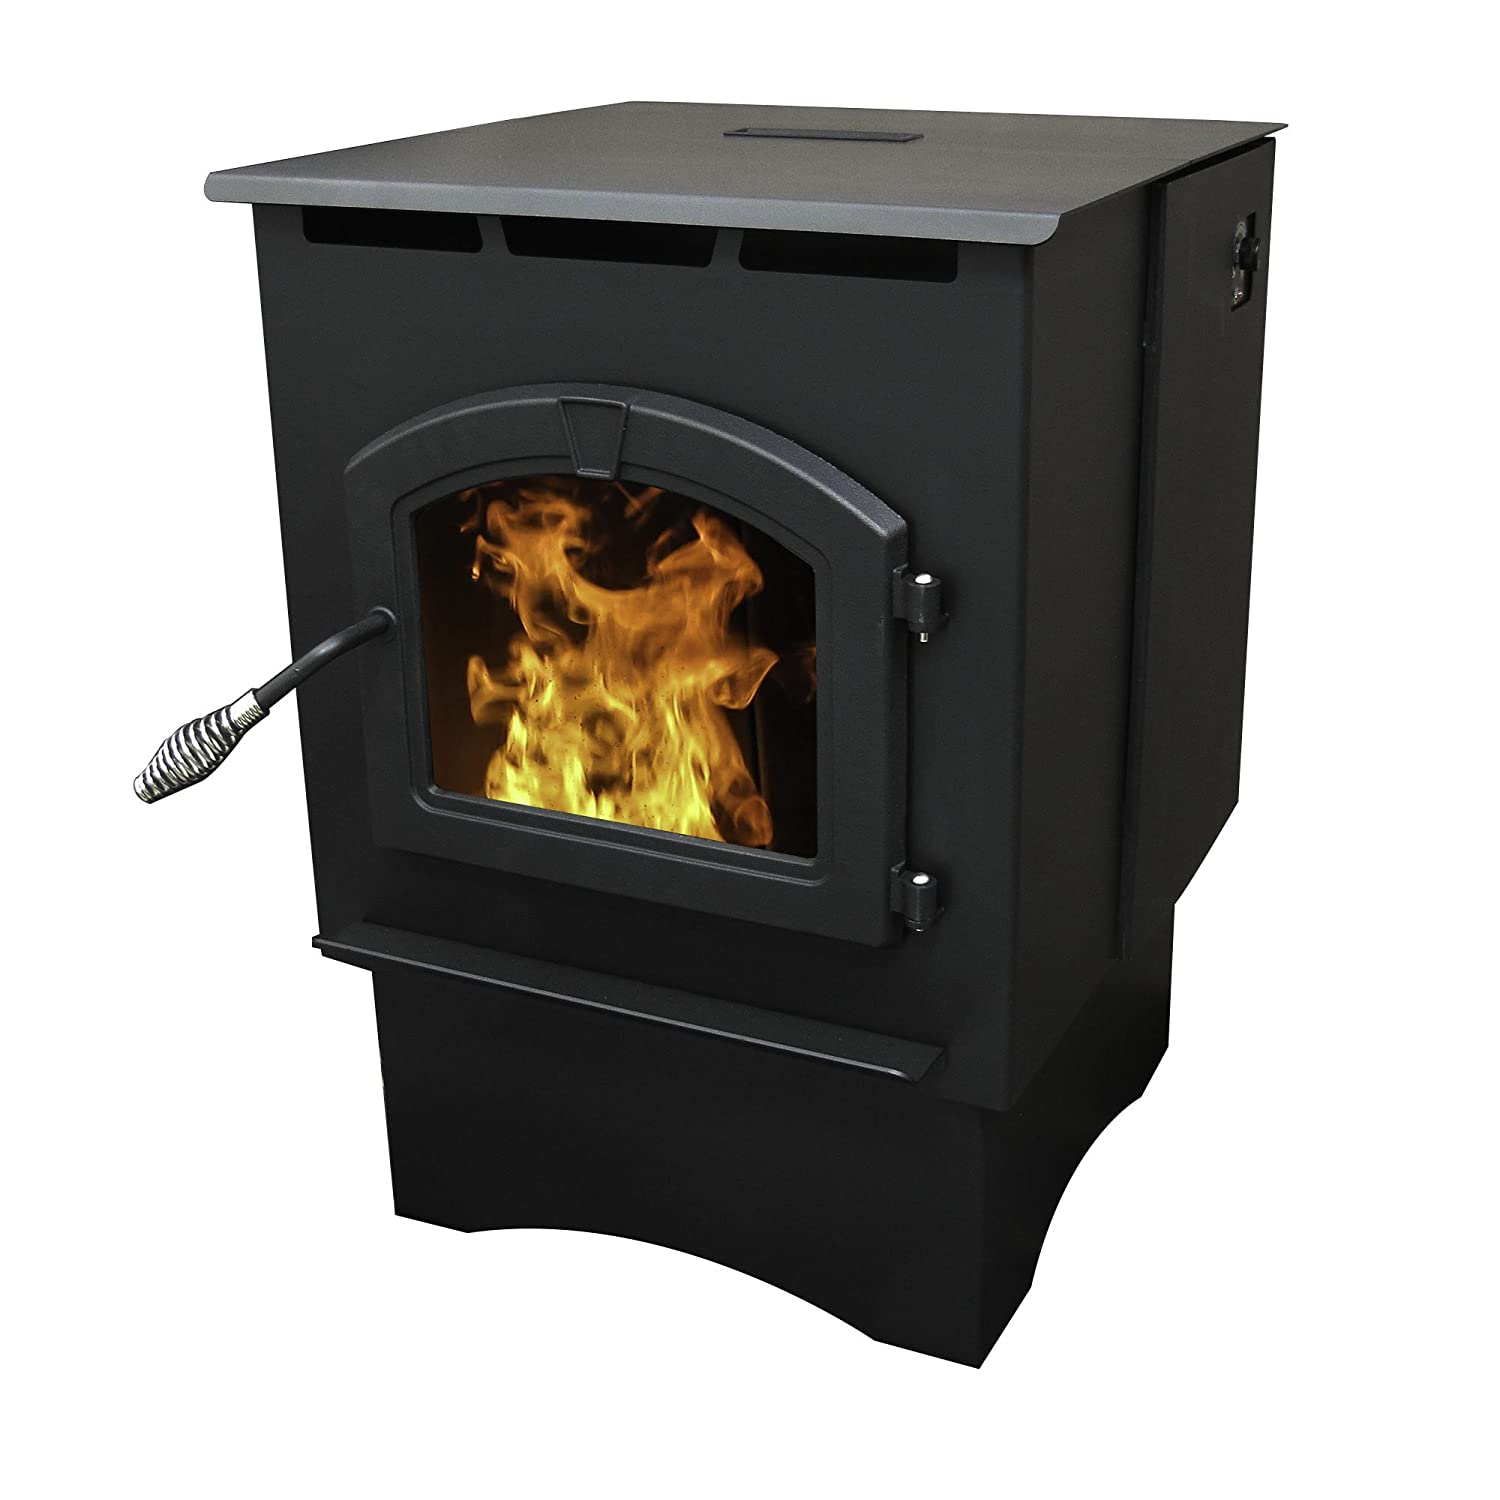 Amazon.com: Pleasant Hearth Medium 35000 BTU's Pellet Stove with ...